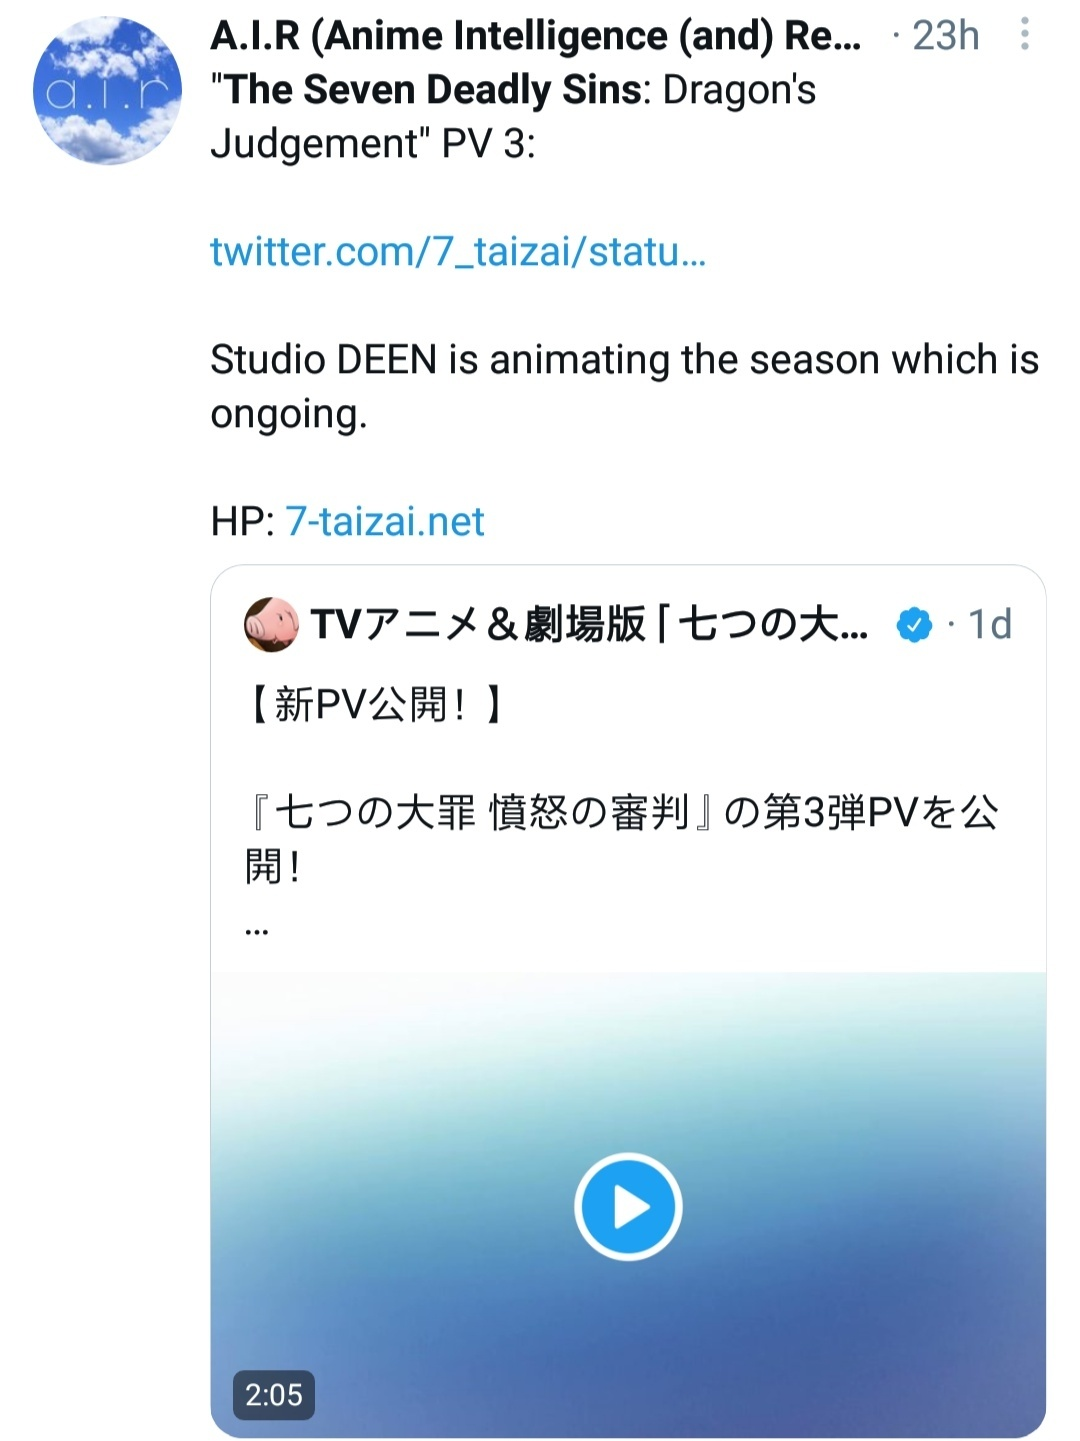 The announcement made on Twitter about The Seven Deadly Sins: Dragon's Judgement PV 3